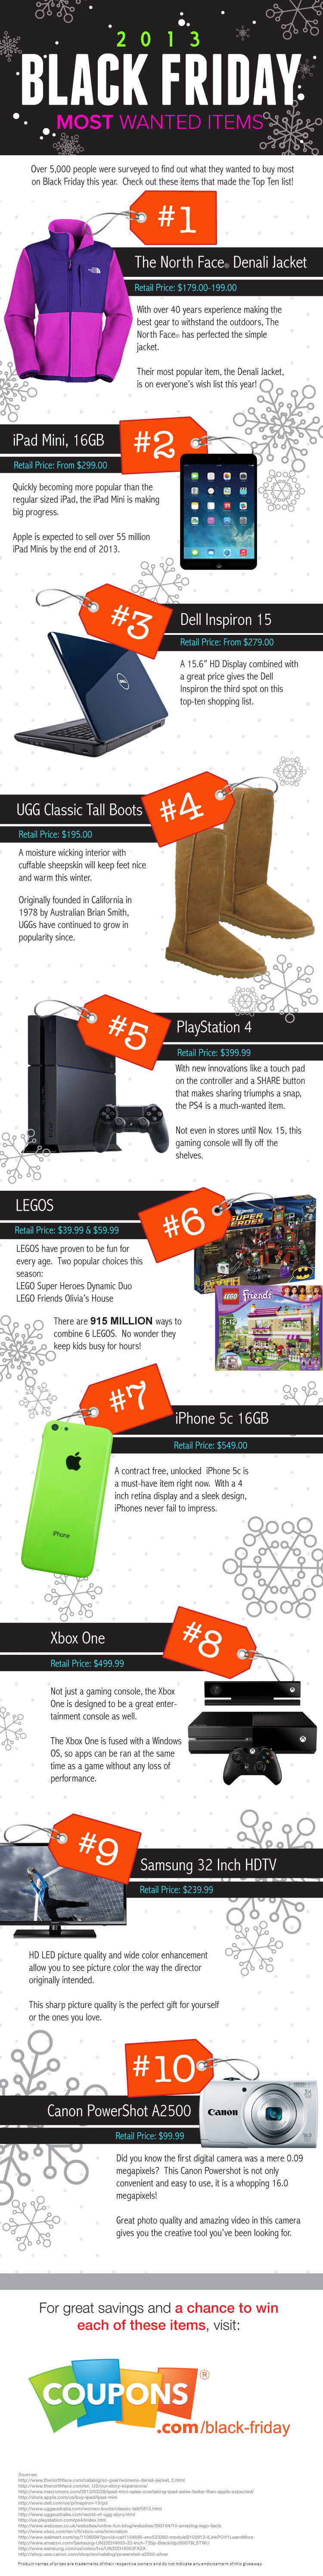 50 Black Friday Infographics Ideas Black Friday Infographic Friday